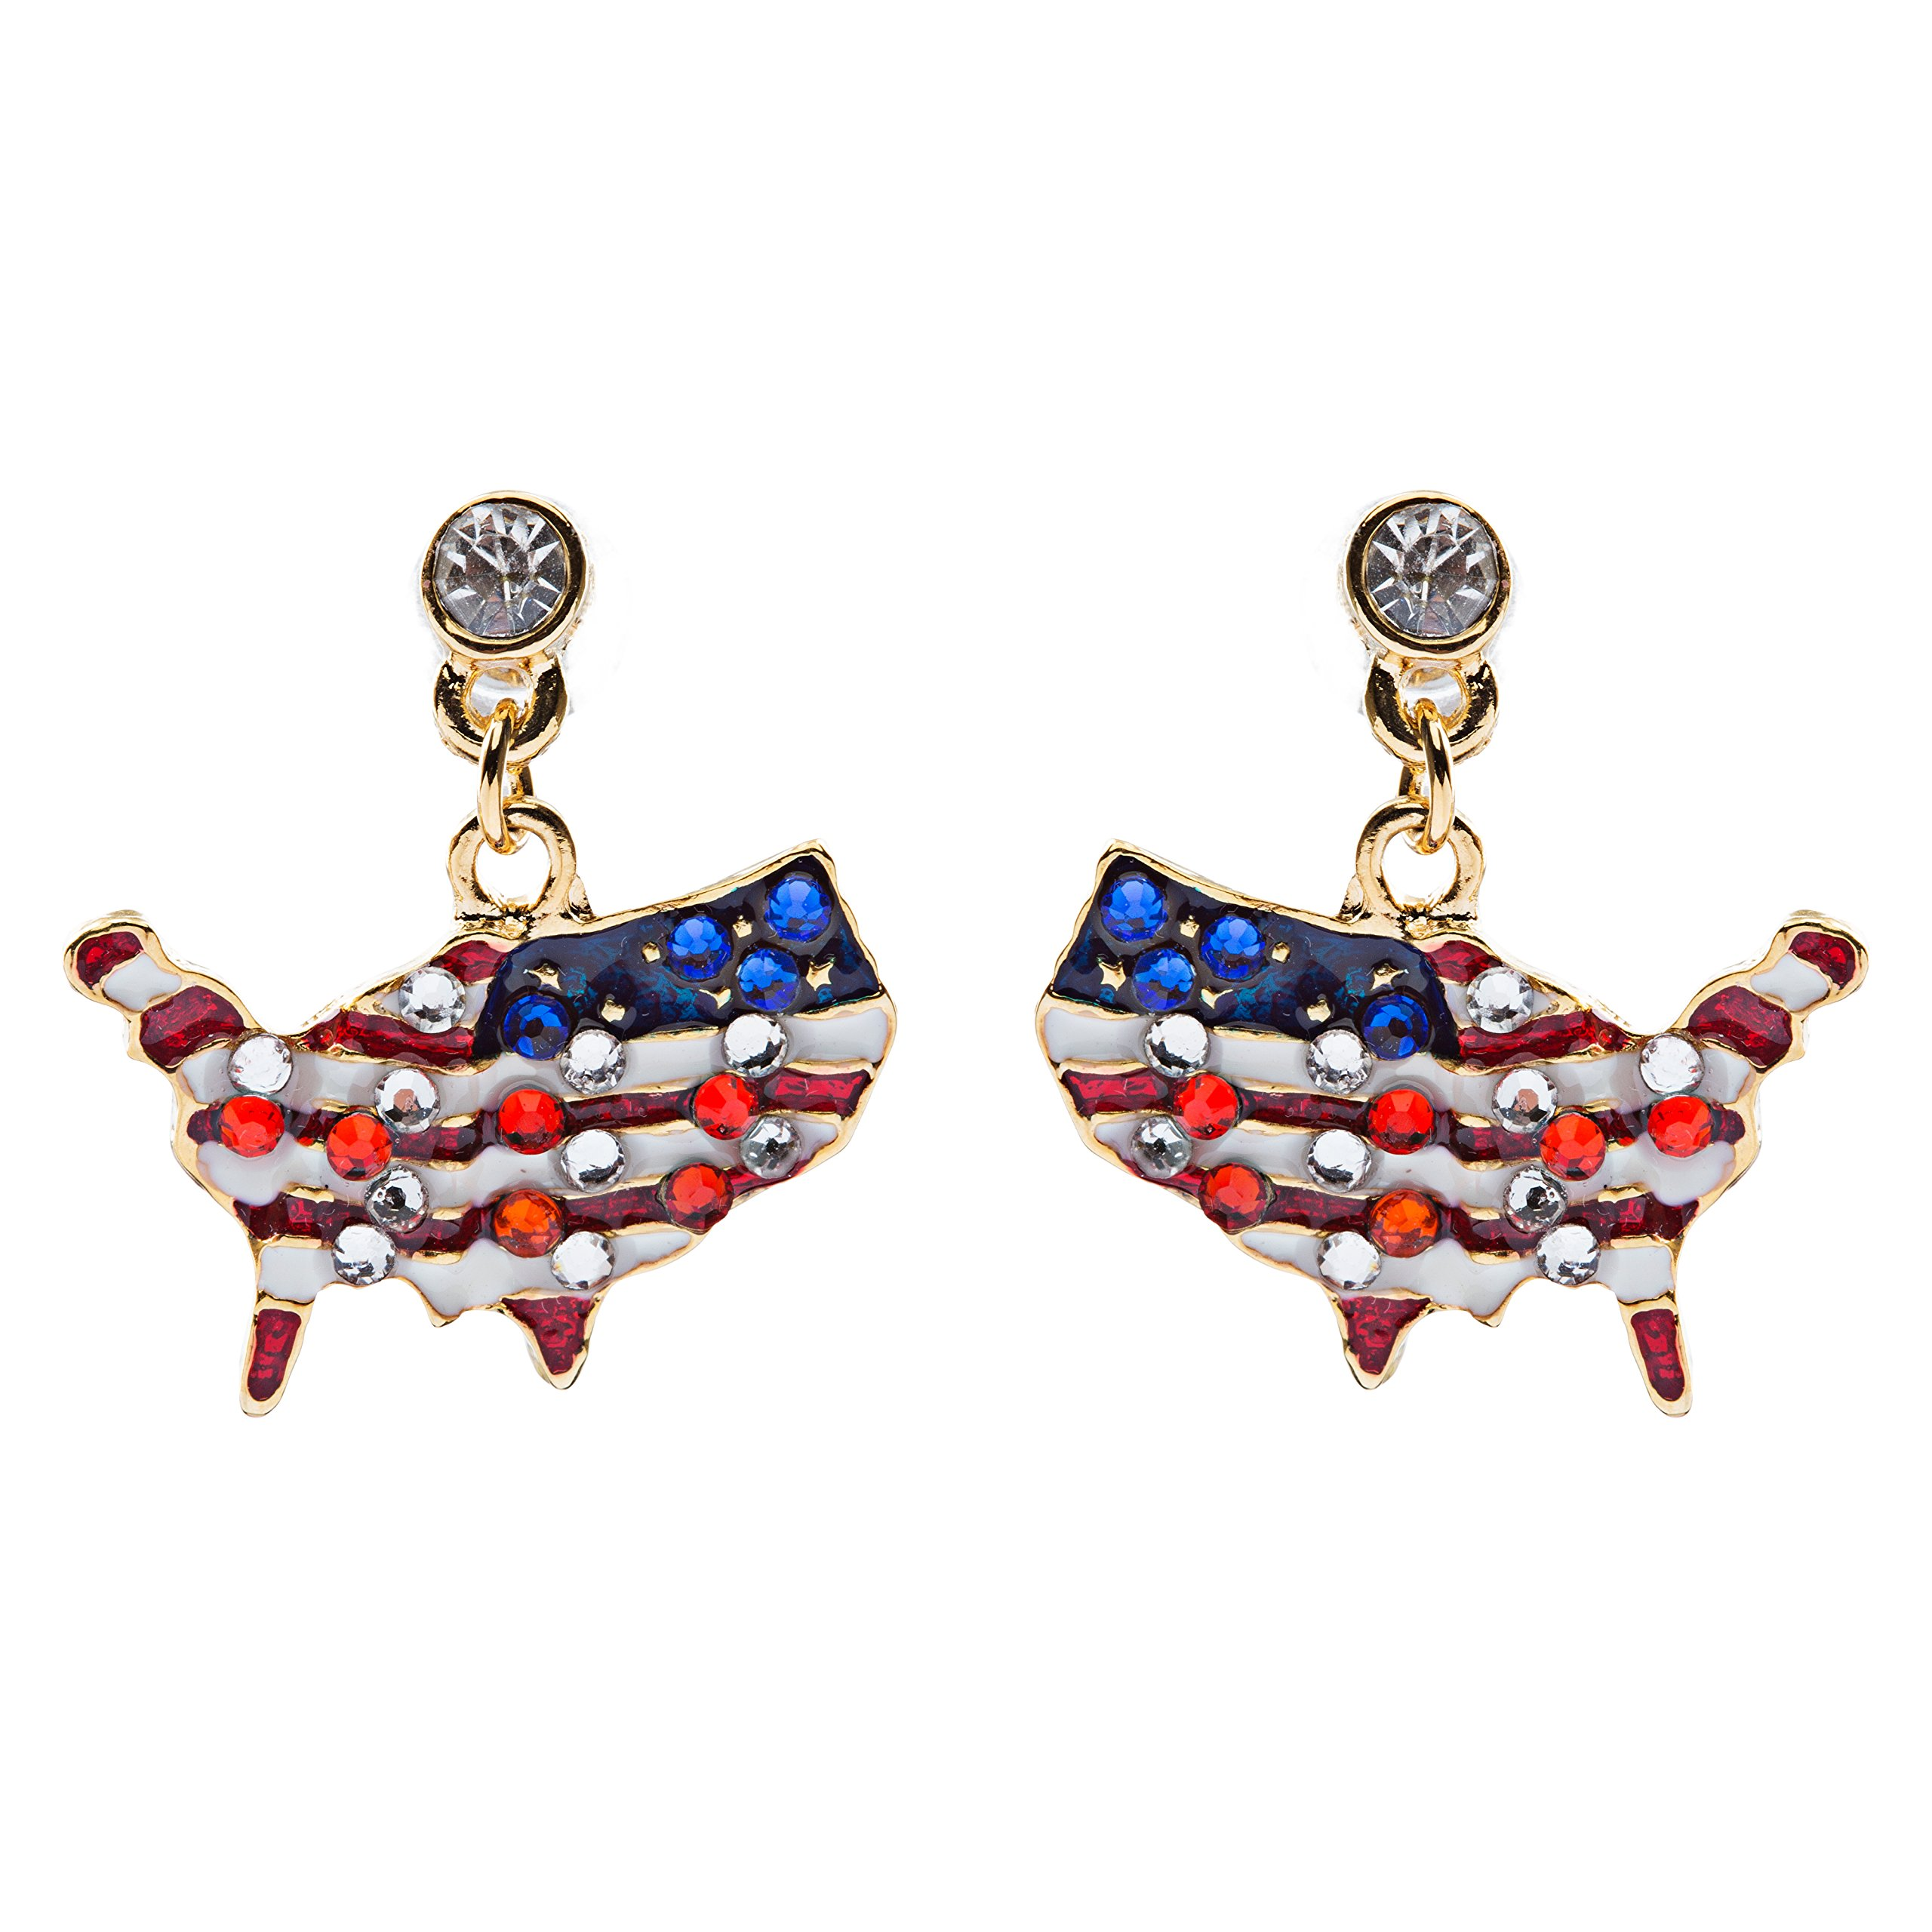 ACCESSORIESFOREVER Patriotic Jewelry Crystal Rhinestone American Flag Dangle Earrings E762 Gold